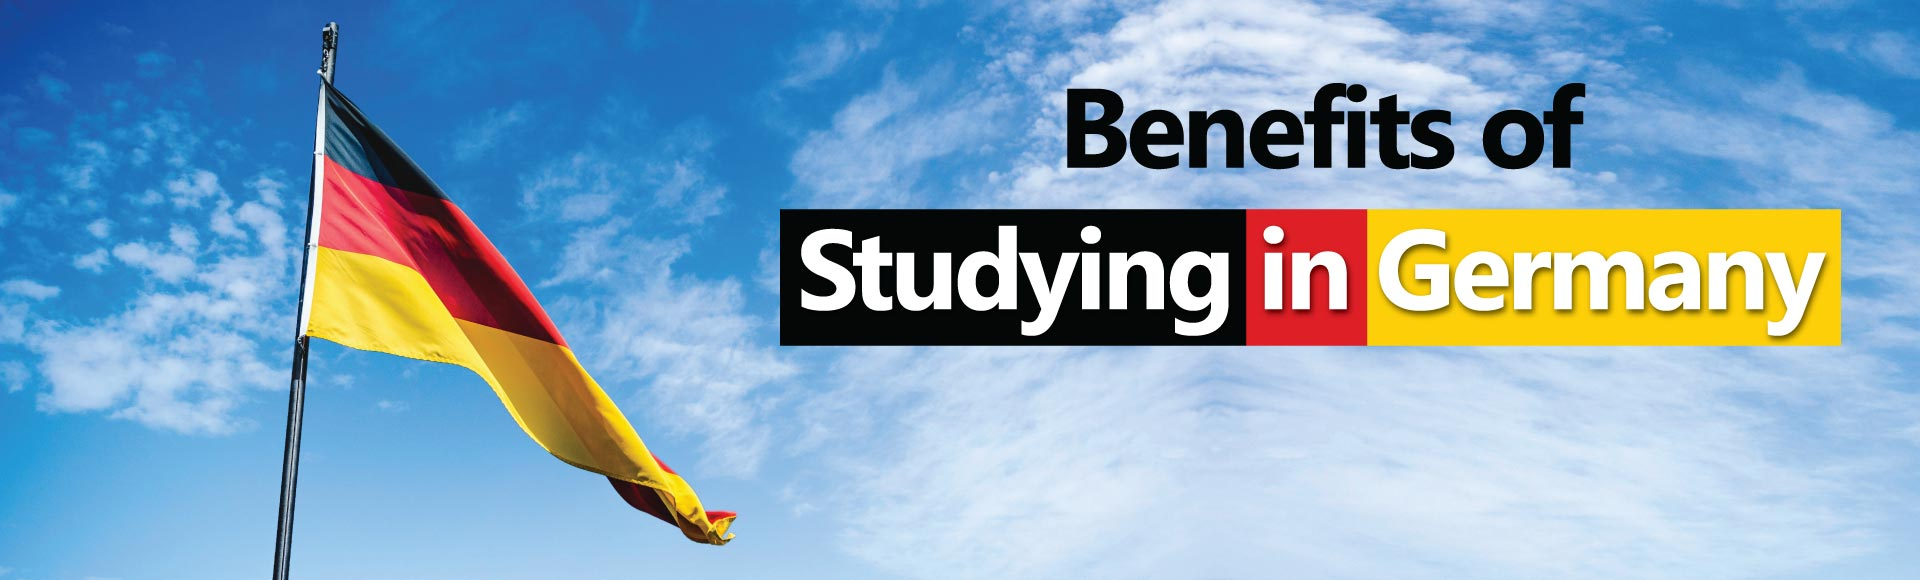 Benefits of study in Germany